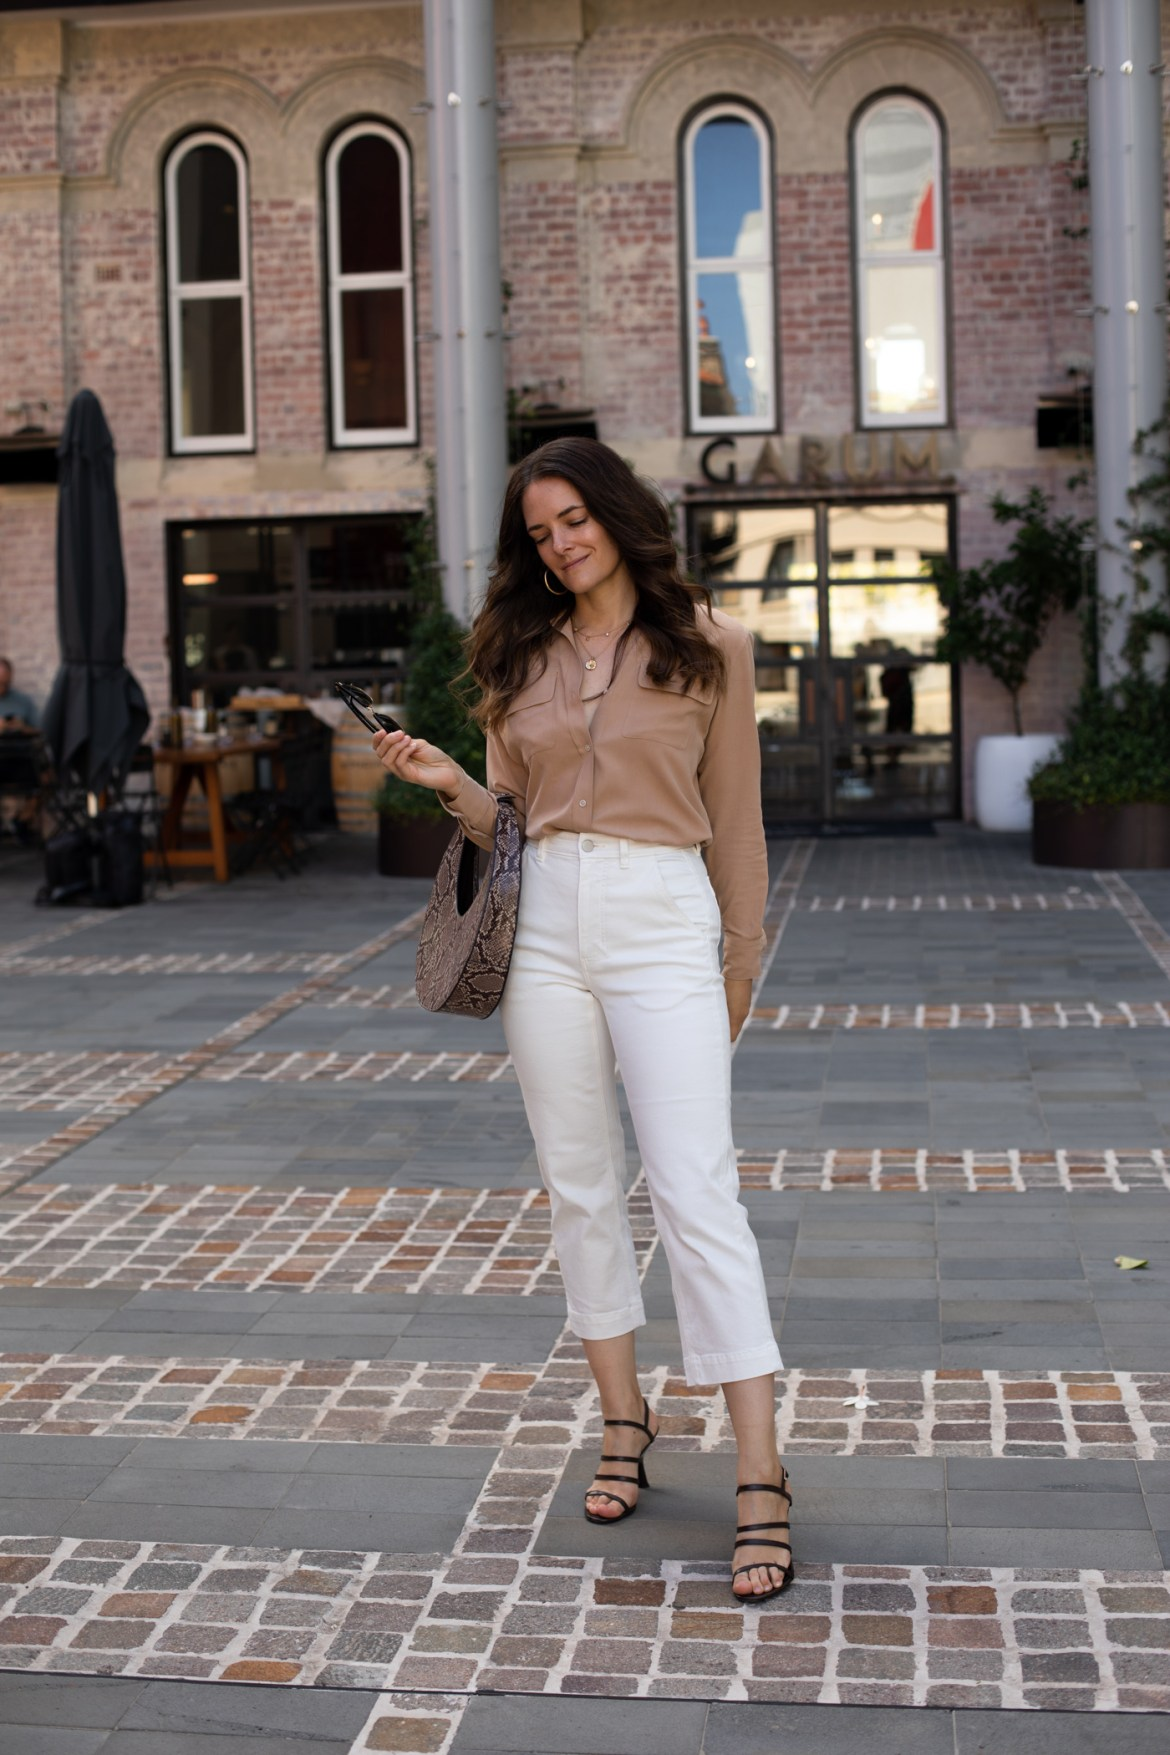 Get Everlane's best selling straight leg crop pants for only $50!